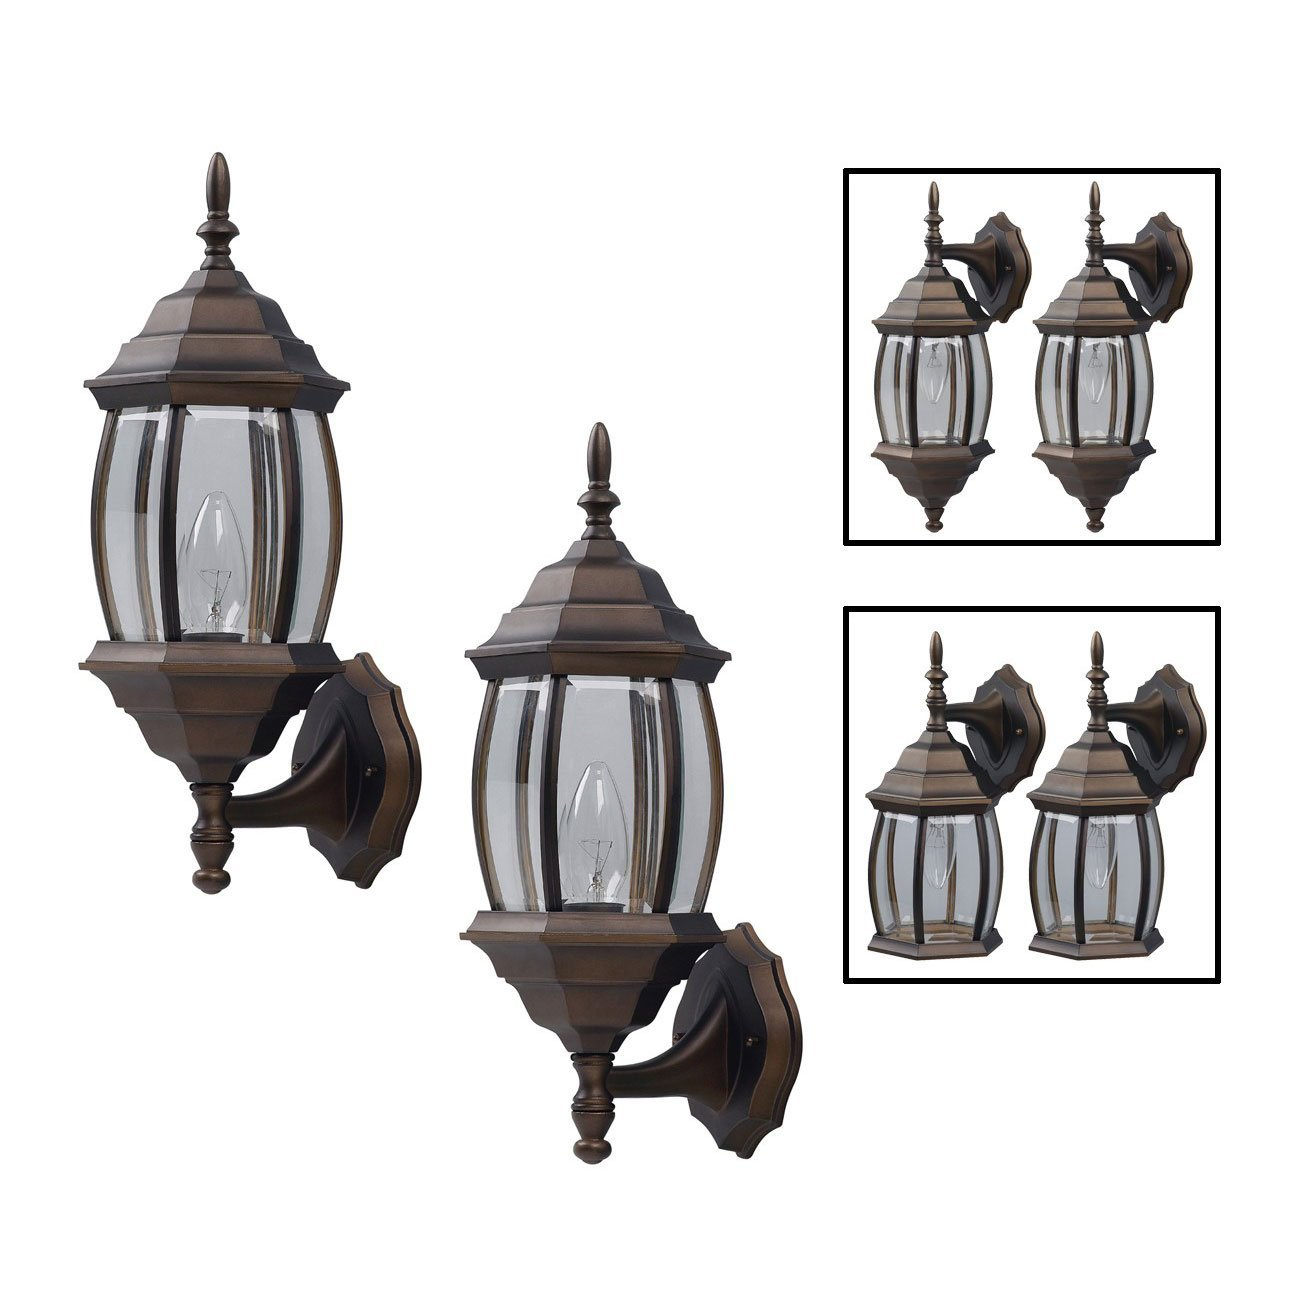 Outdoor Exterior Lantern Light Fixture Wall Sconce Twin Pack Oil Rubbed Bronze Com